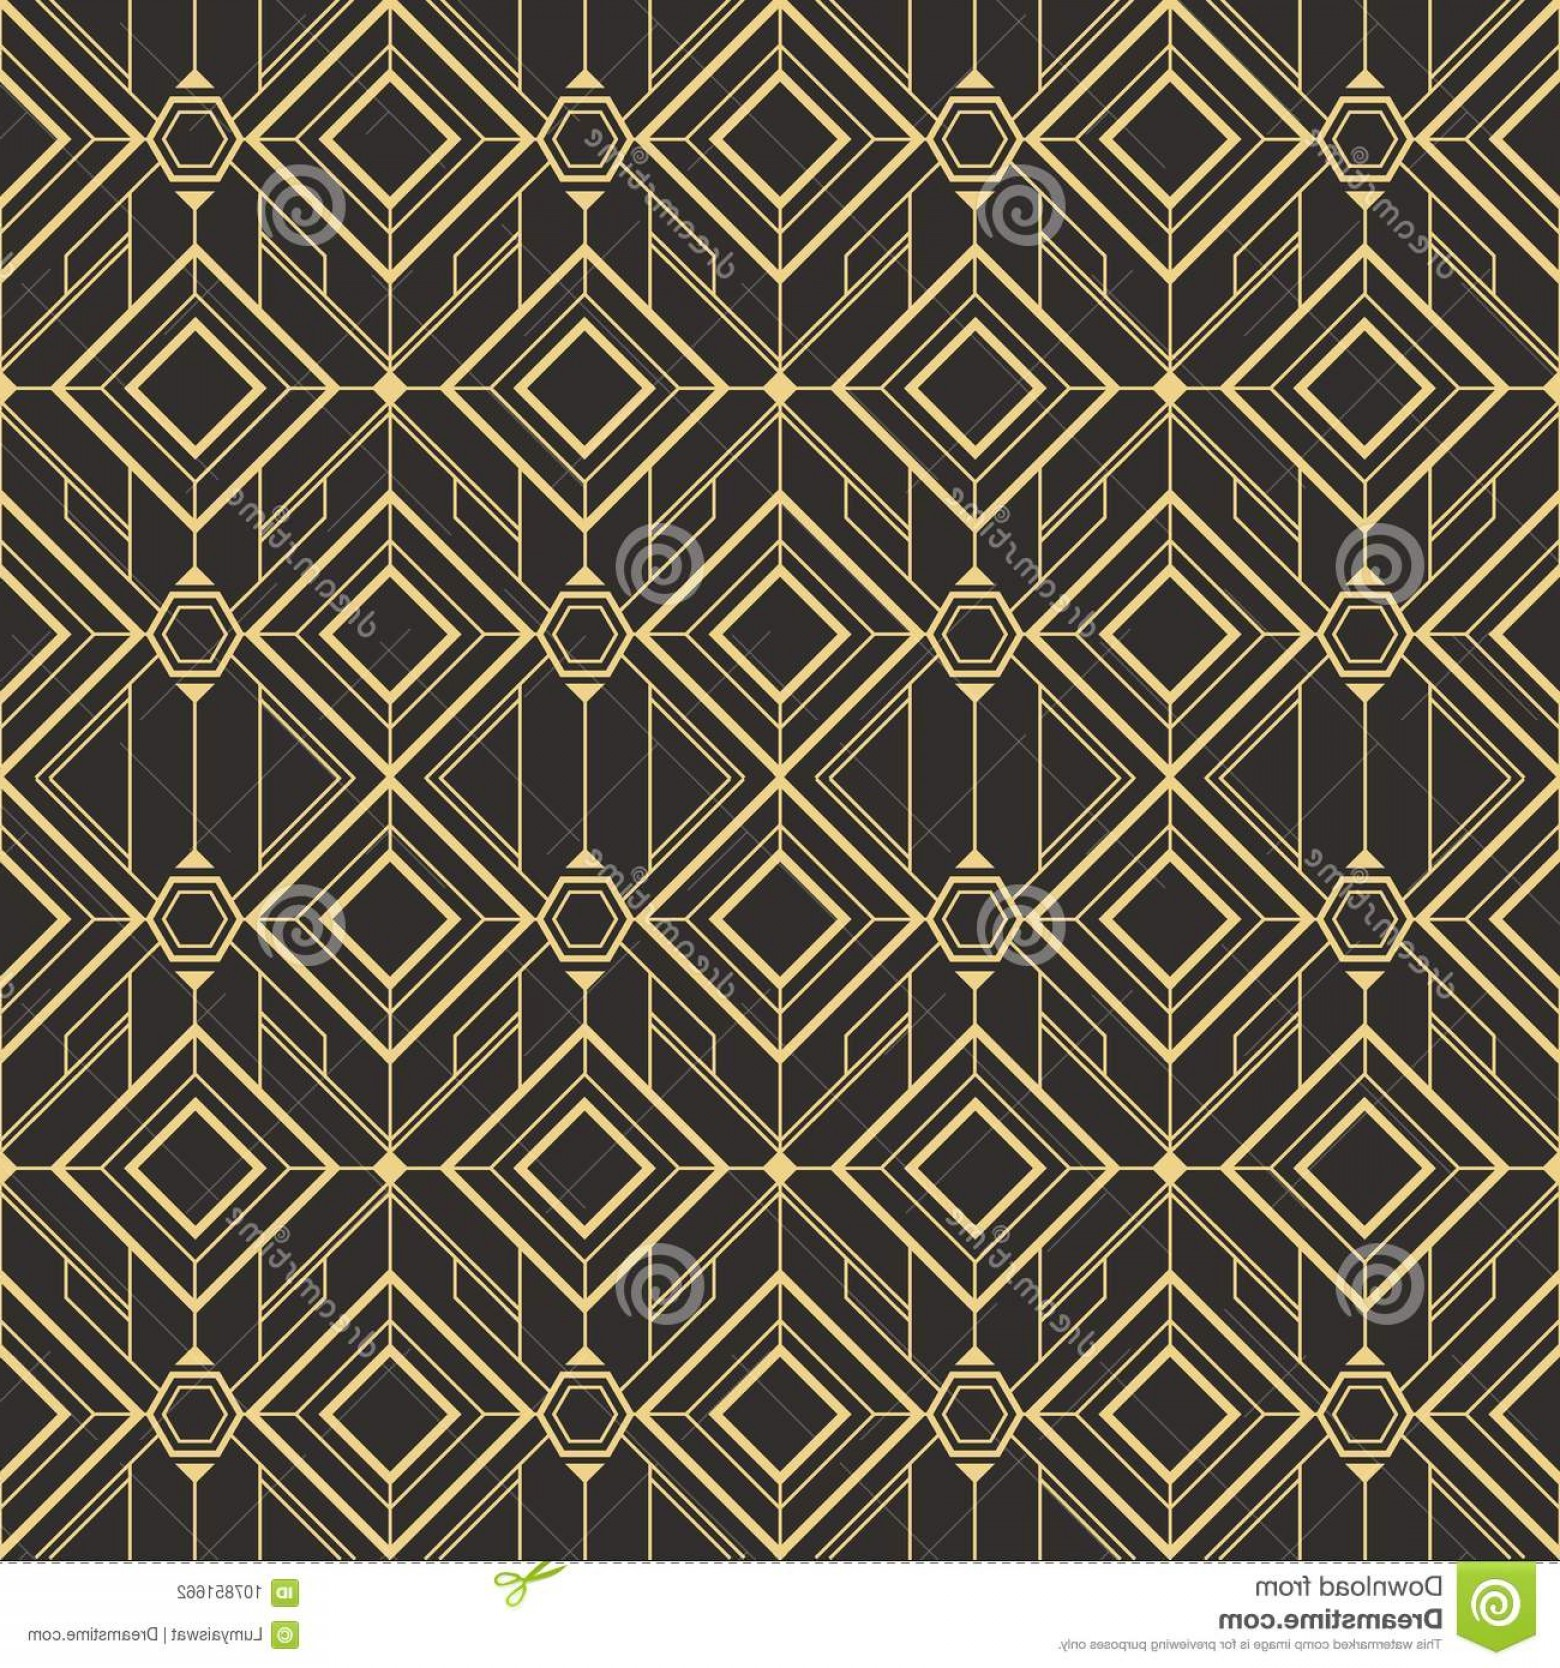 Art Deco Tile Vector Design: Abstract Art Deco Tiles Pattern Vector Modern Seamless Monochrome Background Image